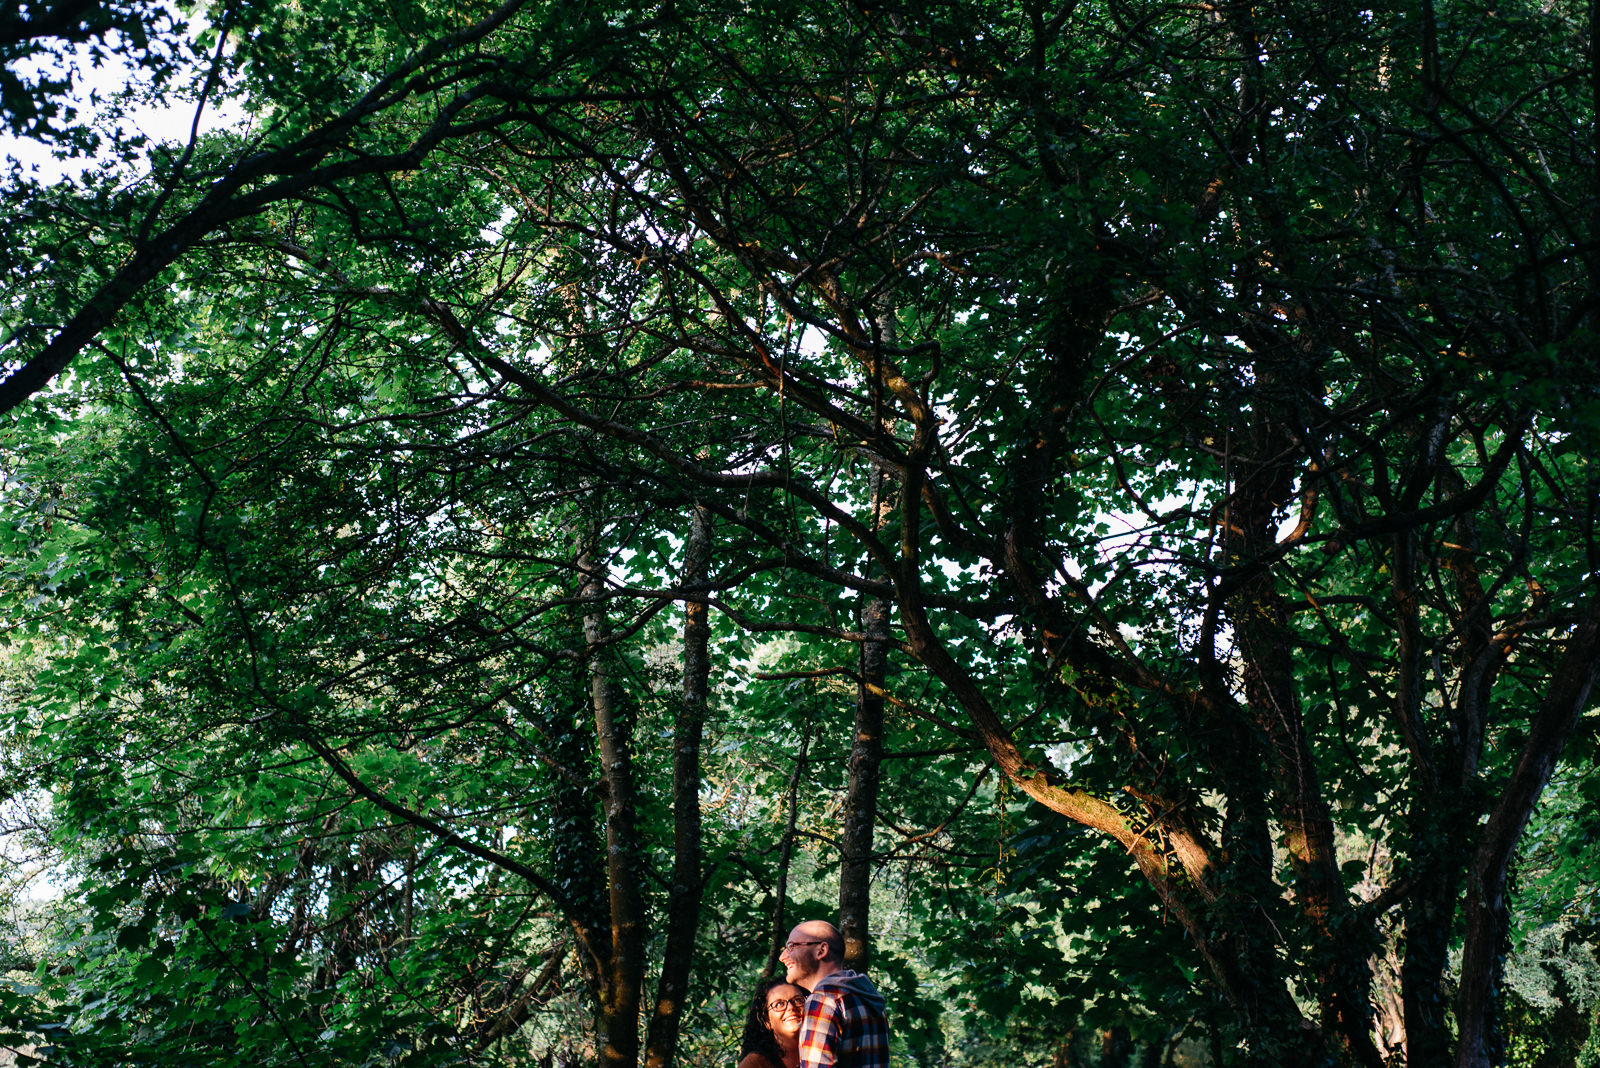 Couple under tree canopy during engagement session in the woods at Cosmeston Lakes country park